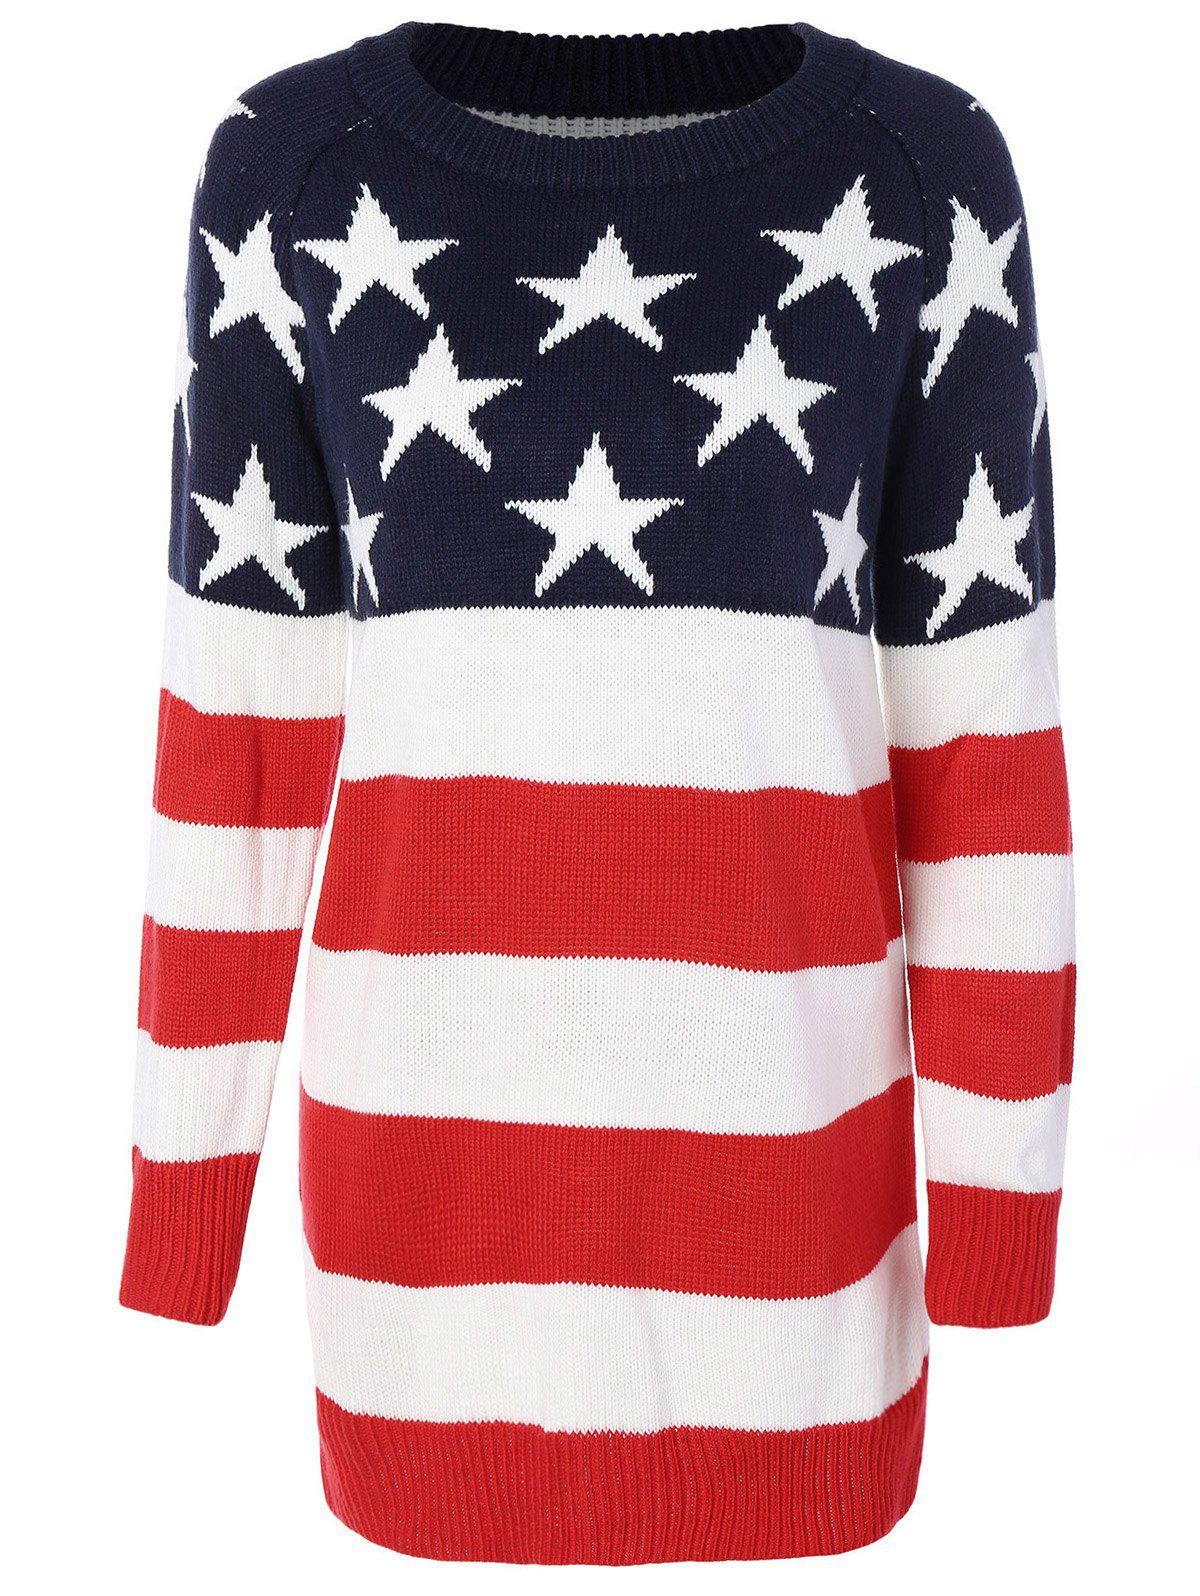 Flag Patterned Crew Neck Sweater Tunique Rouge et blanc et bleu M